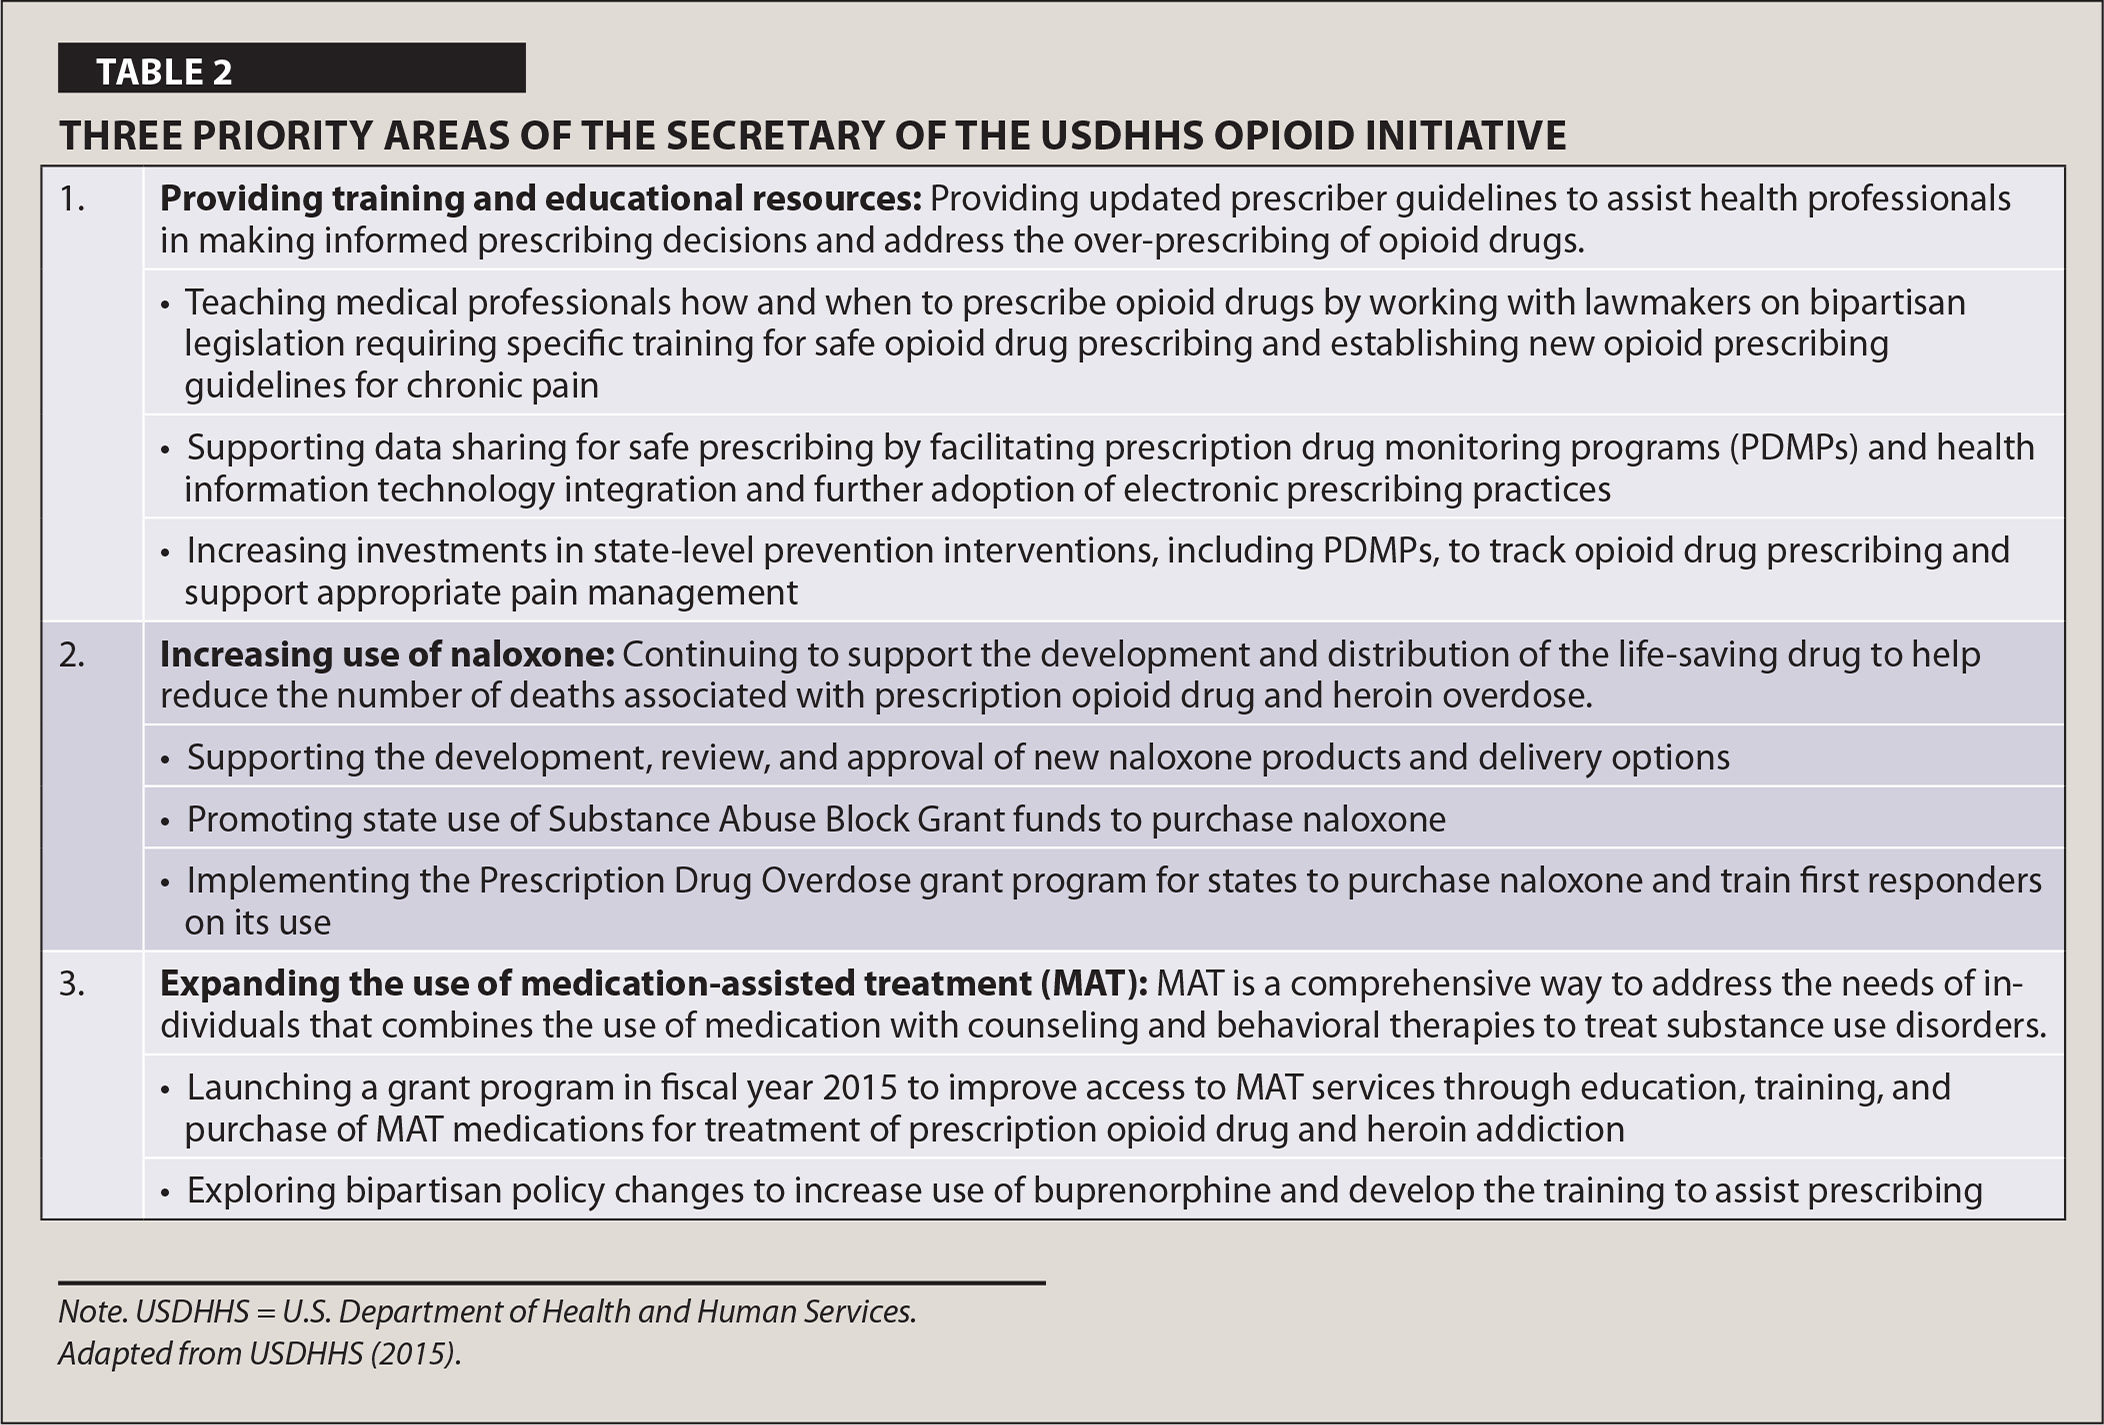 Three Priority Areas of the Secretary of the USDHHS Opioid Initiative